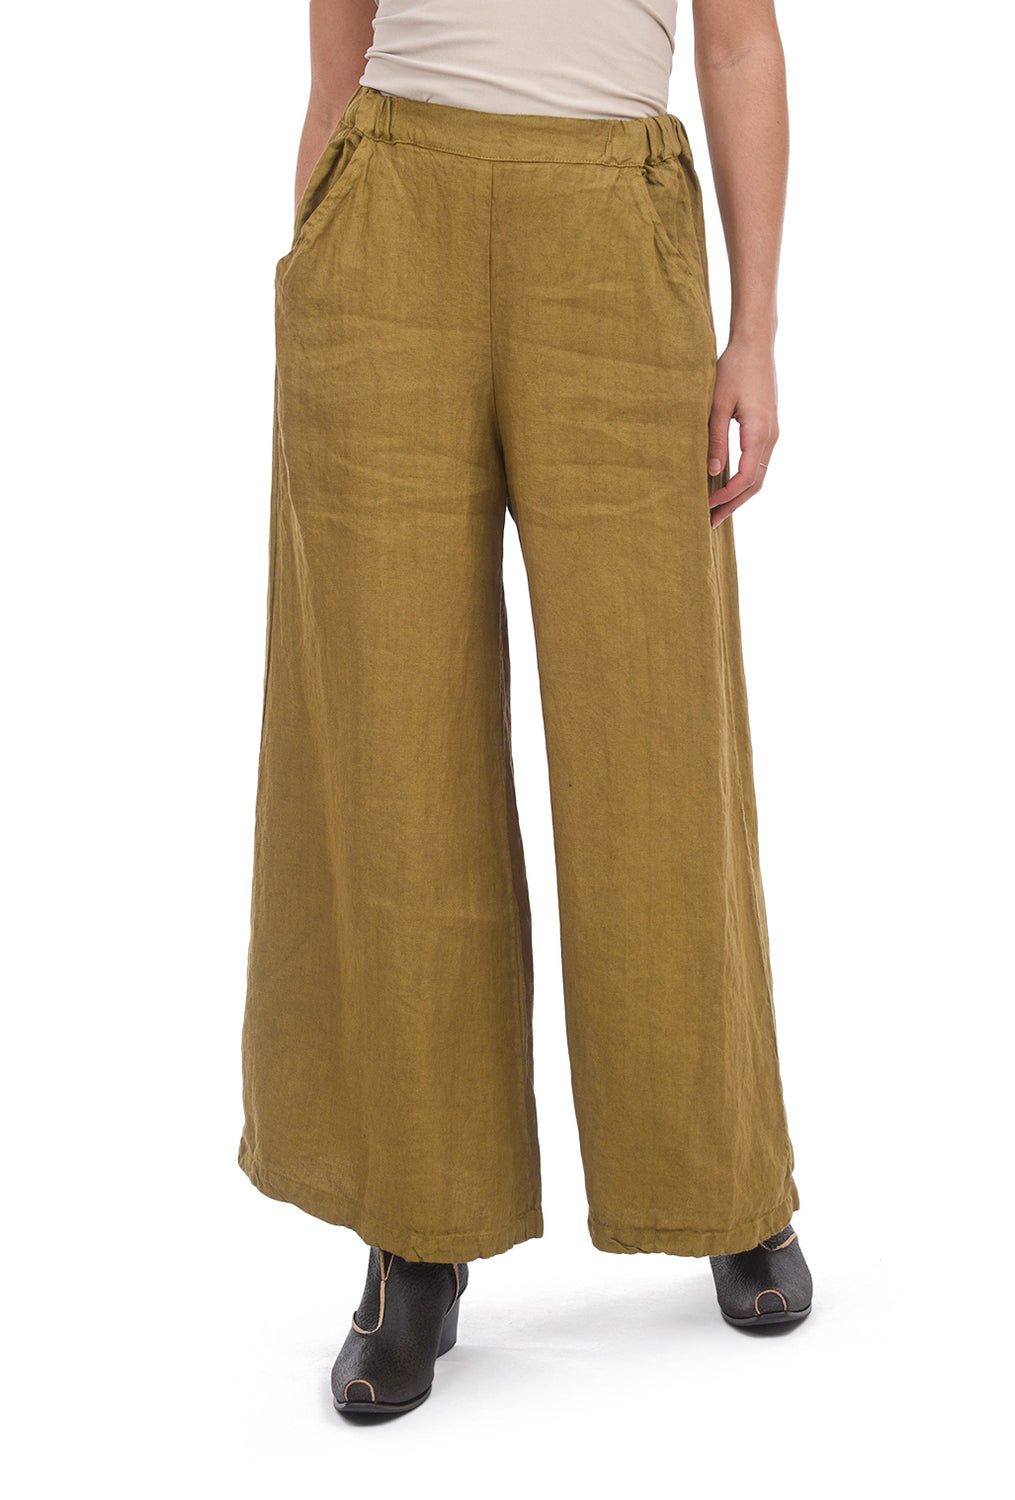 CP Shades Linen Wendy Pants, Ochre Alloy